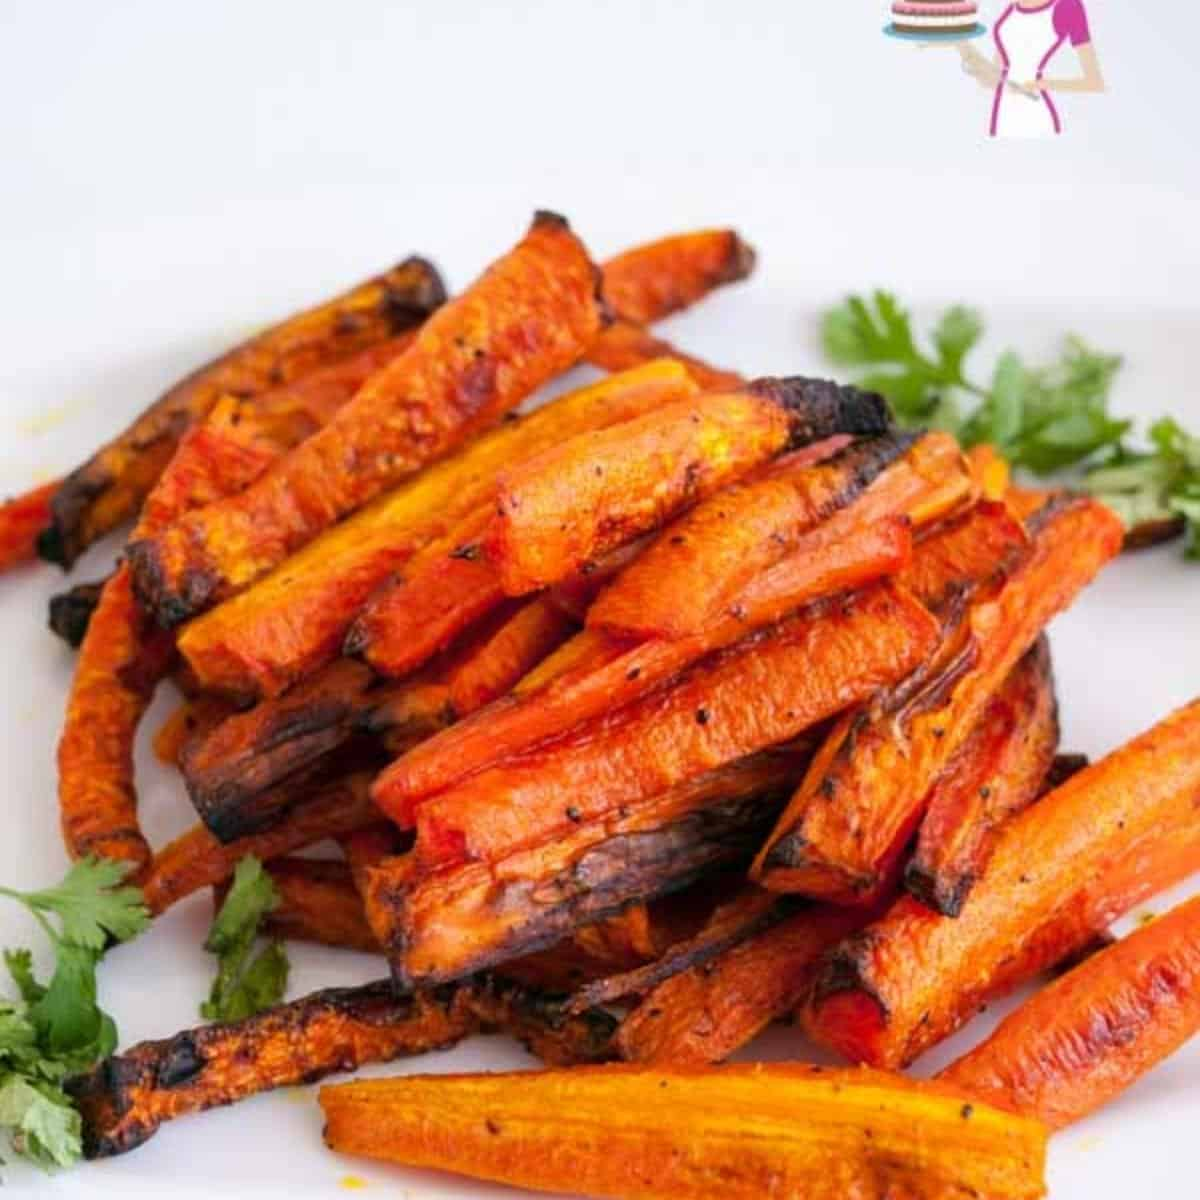 Baked carrots on a white plate